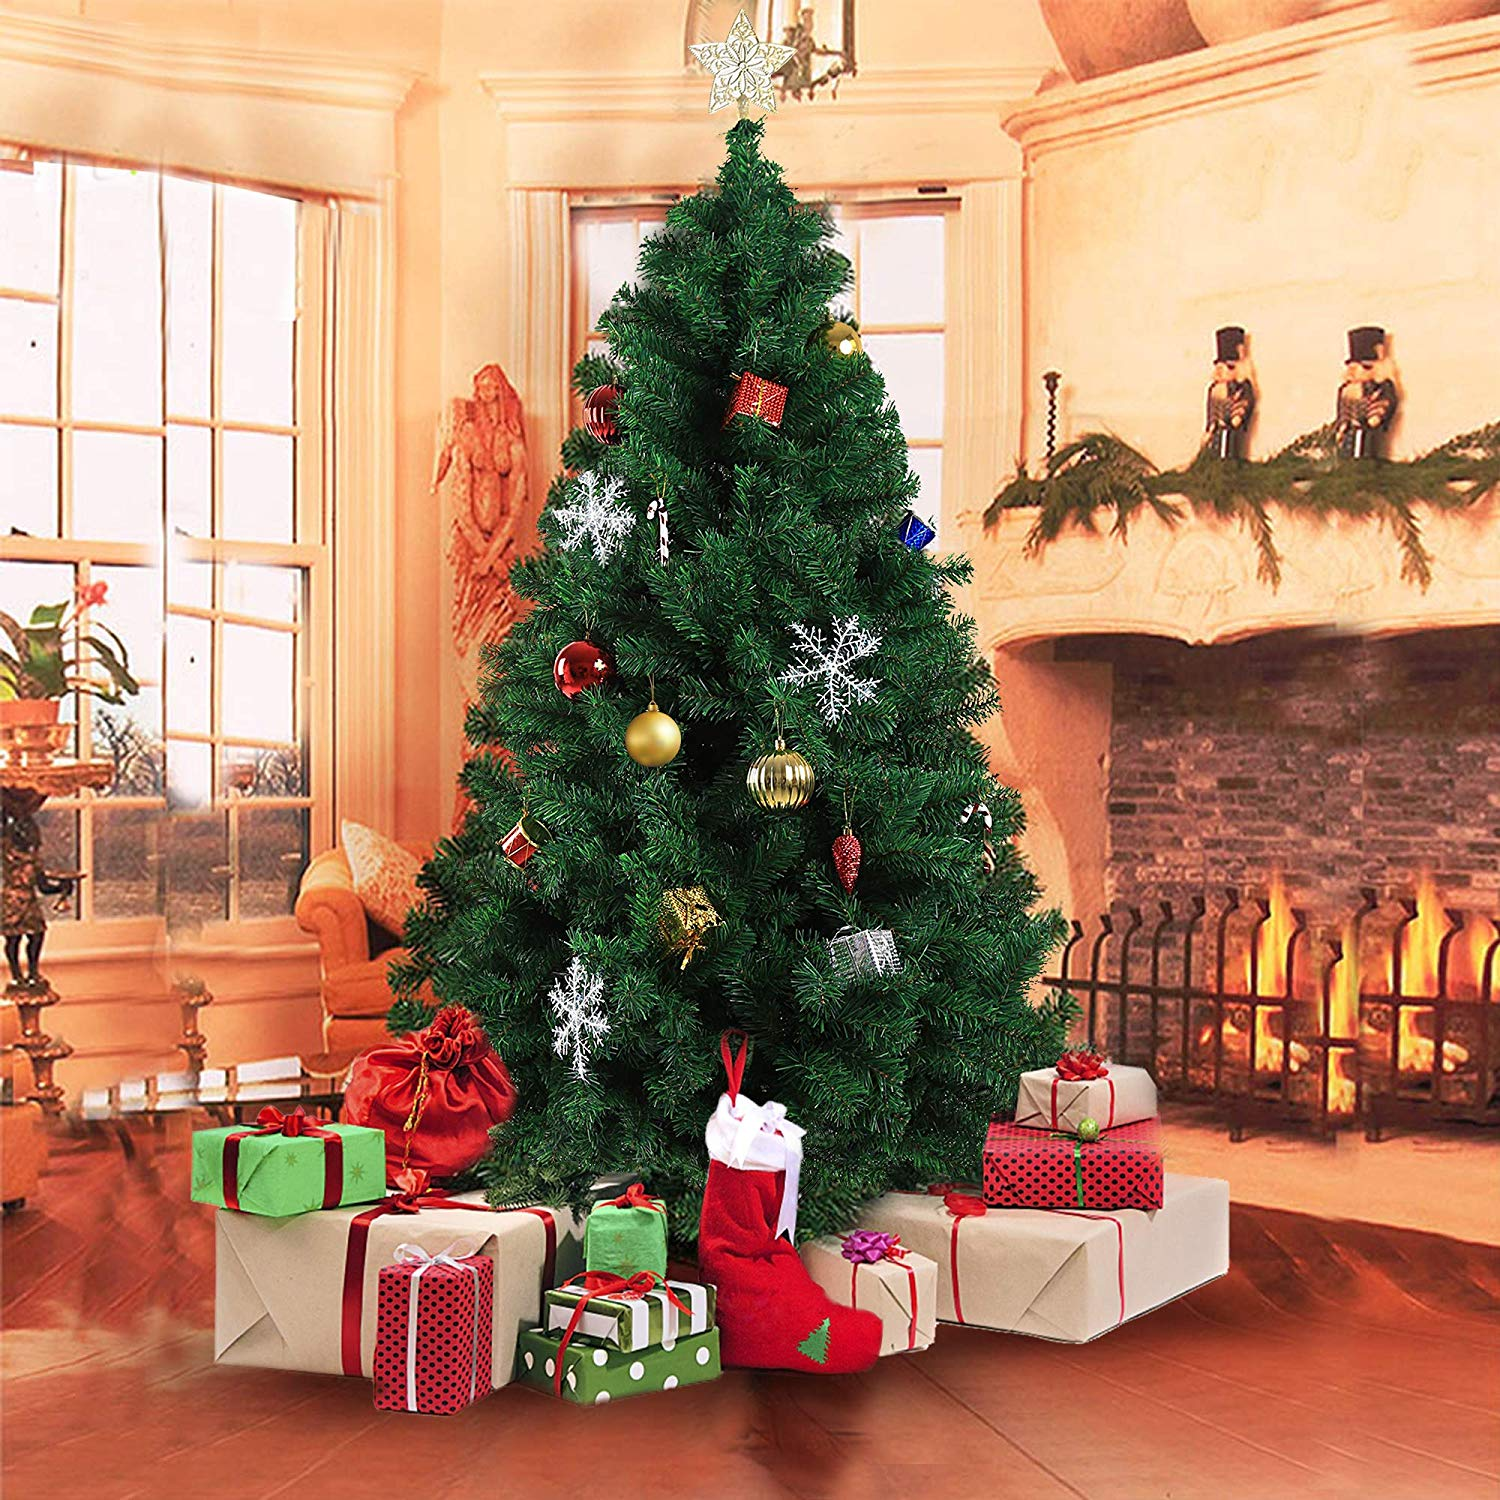 Christmas Tree Auction: UK 4ft 5ft 6ft Christmas Tree Decorations Home Decor